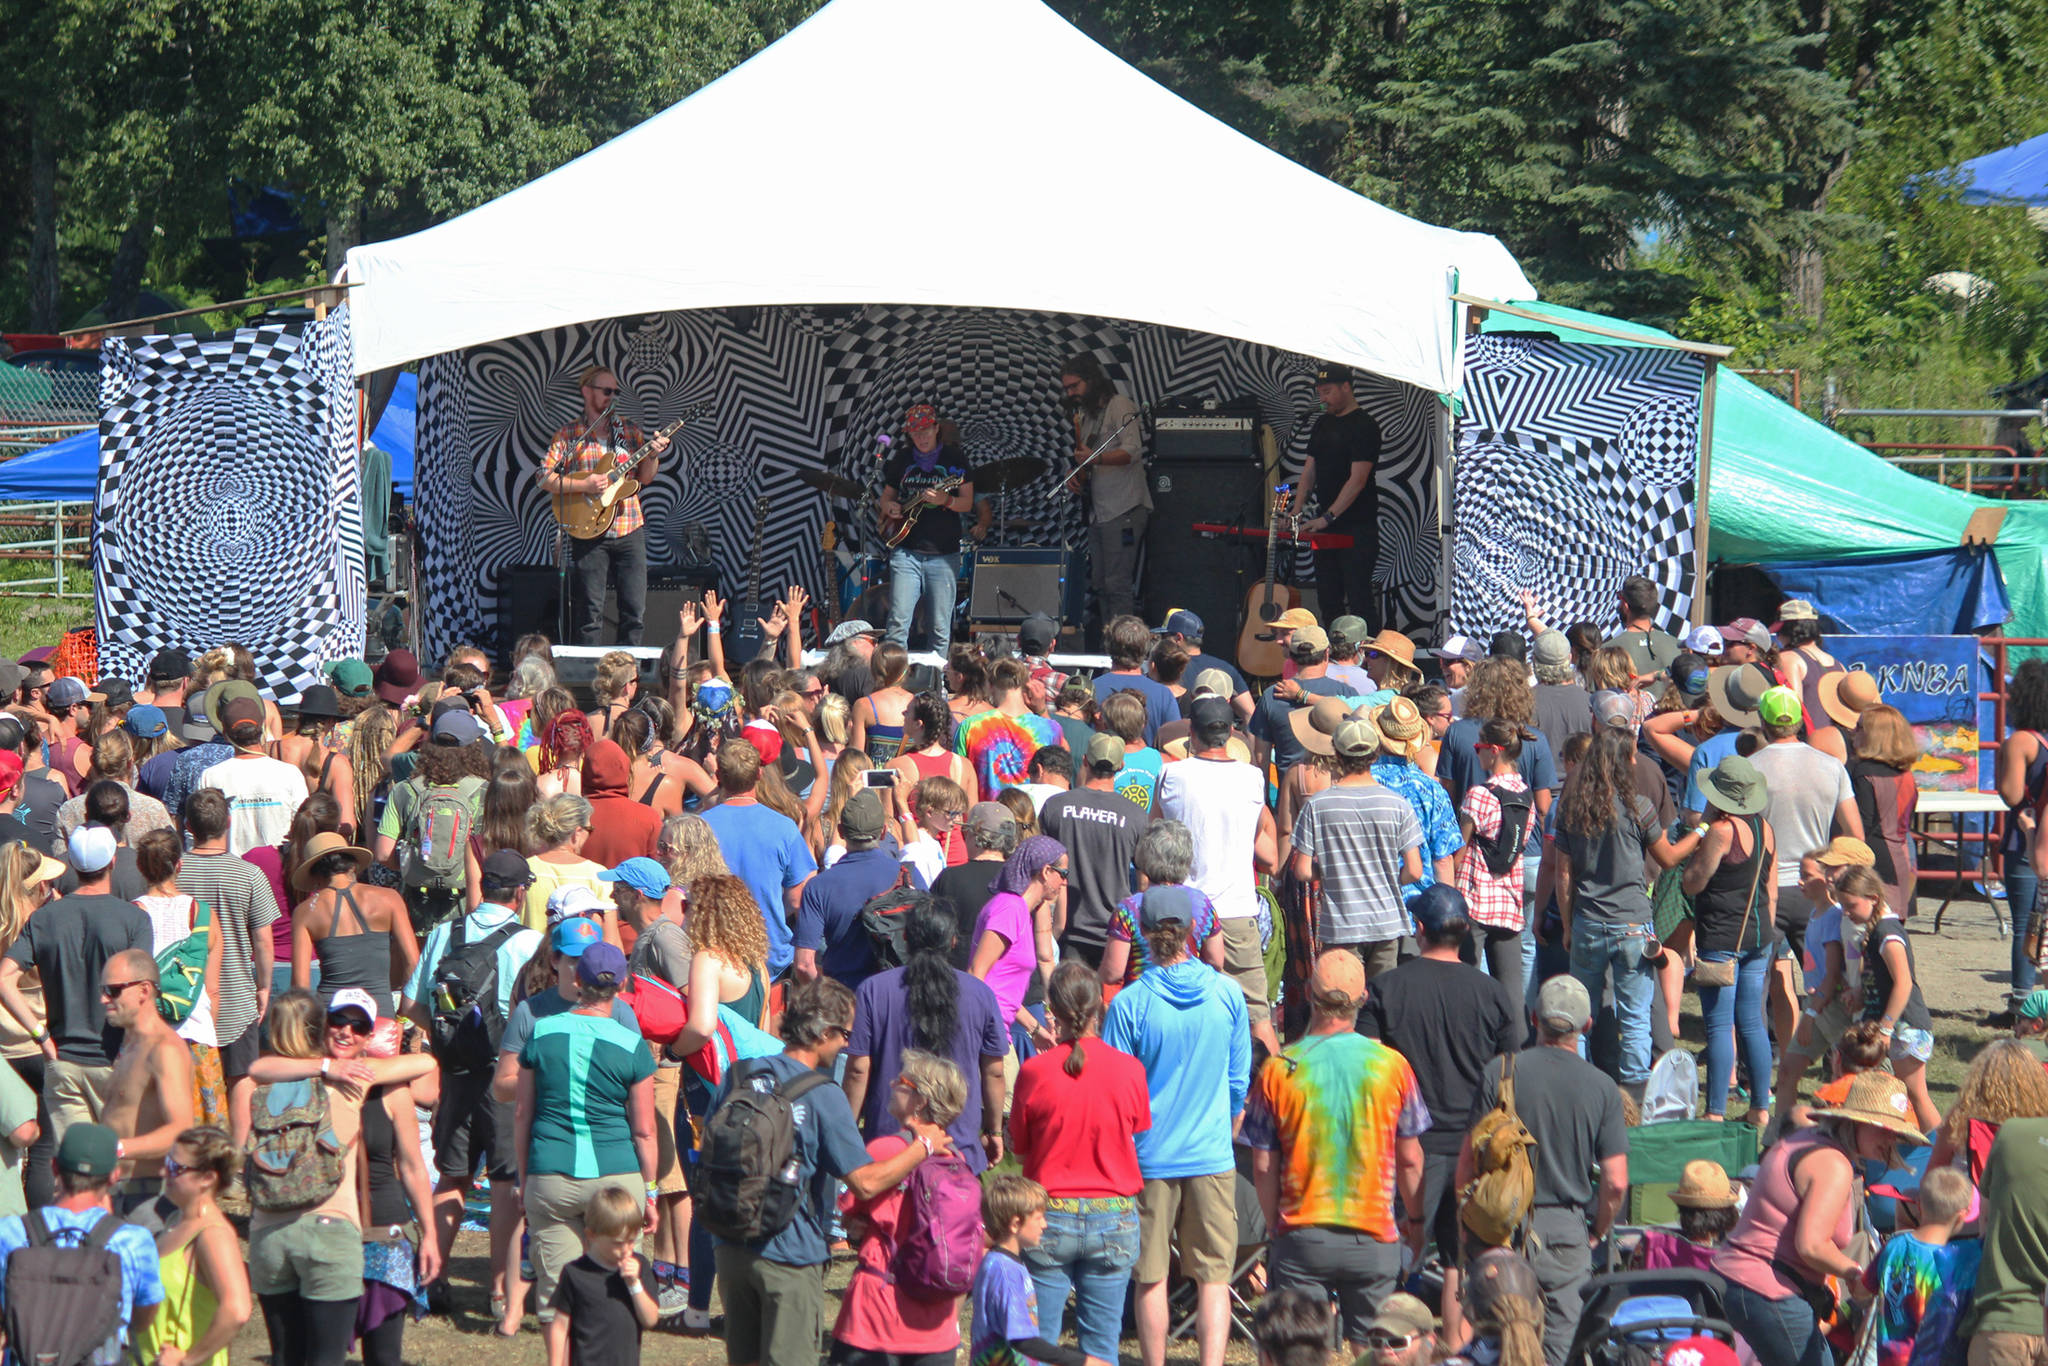 Music lovers listen to a performance on the River Stage at Salmonfest on Saturday, Aug. 4, 2018 in Ninilchik, Alaska. (Photo by Megan Pacer/Homer News)